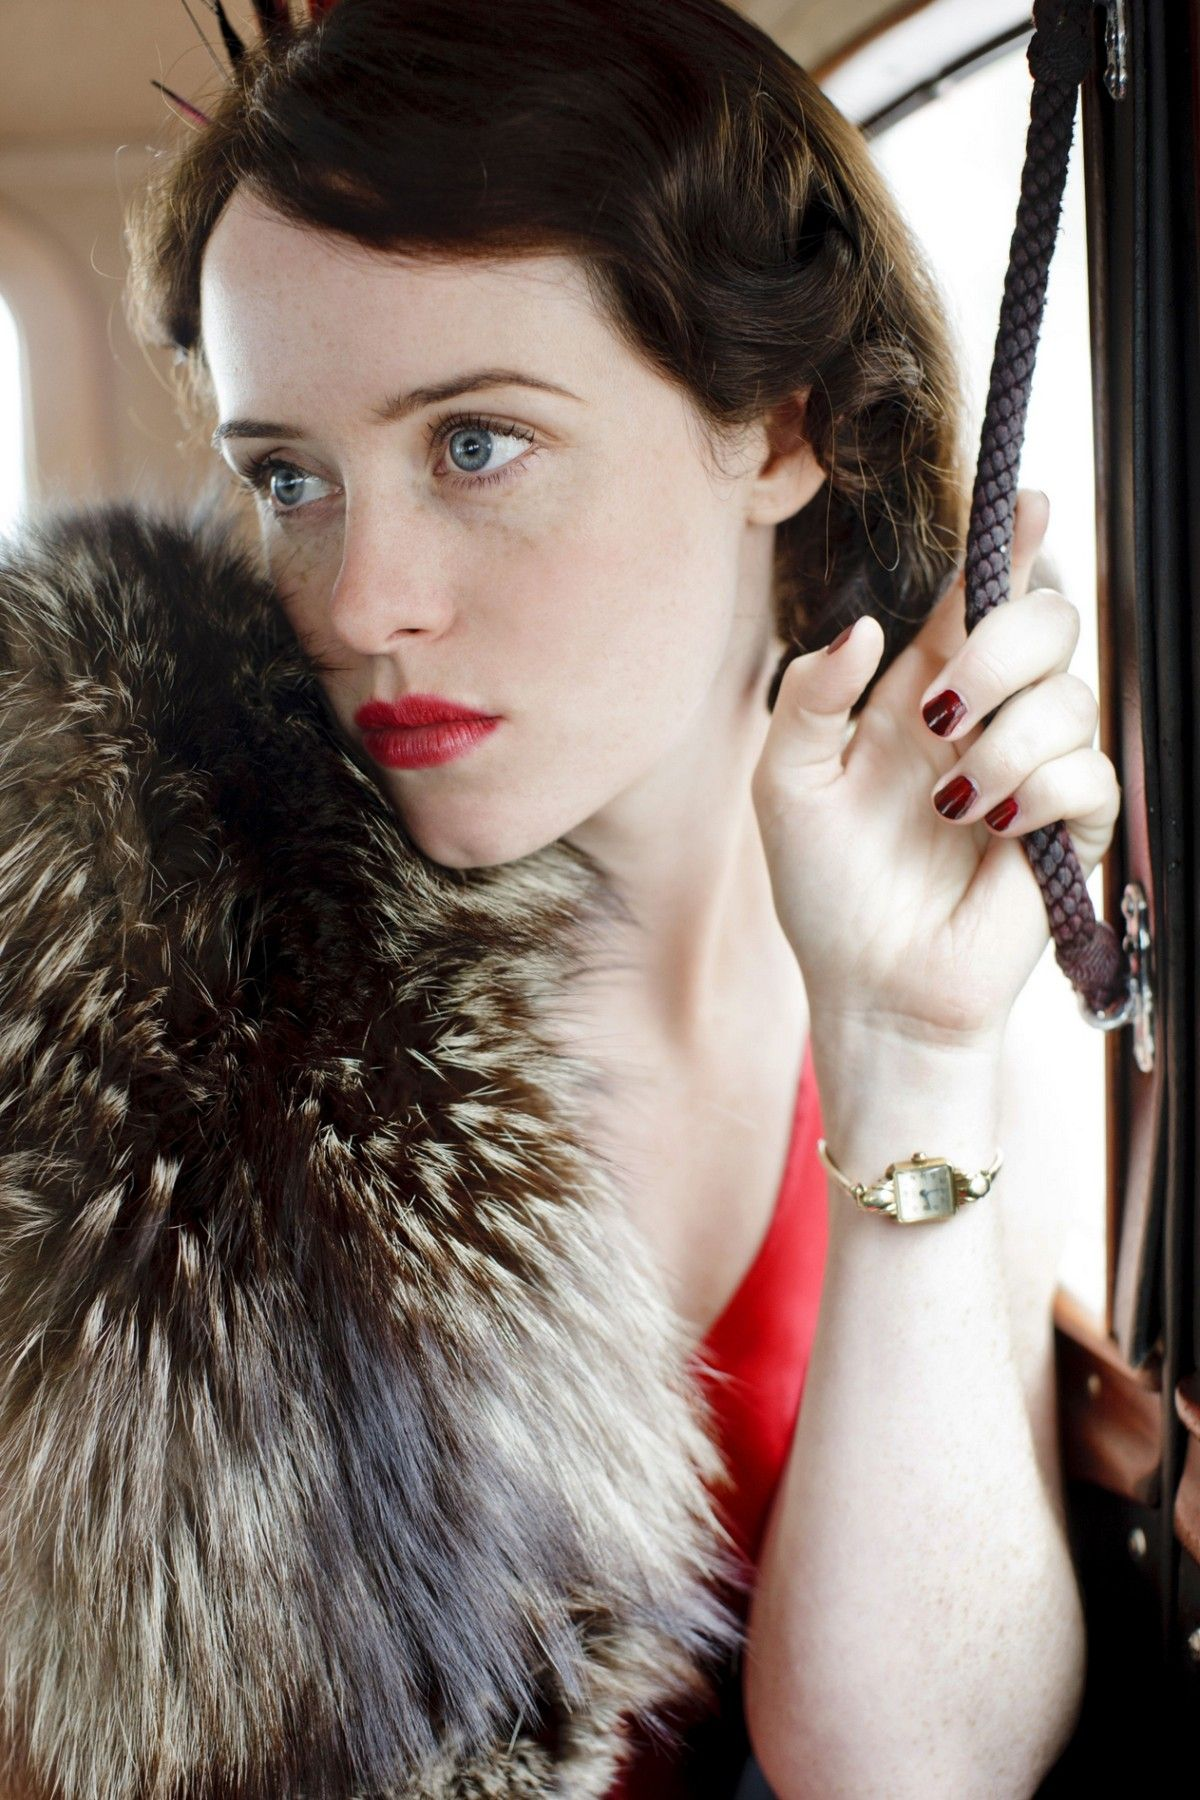 claire foy фотоclaire foy gif, claire foy golden globes, claire foy going postal, claire foy gallery, claire foy фото, claire foy vk, claire foy as anne boleyn, claire foy queen, claire foy site, claire foy actress, claire foy and benedict cumberbatch, claire foy listal, claire foy being human, claire foy website, claire foy source, claire foy son, claire foy height, claire foy and husband, claire foy who's dated who, claire foy and matt